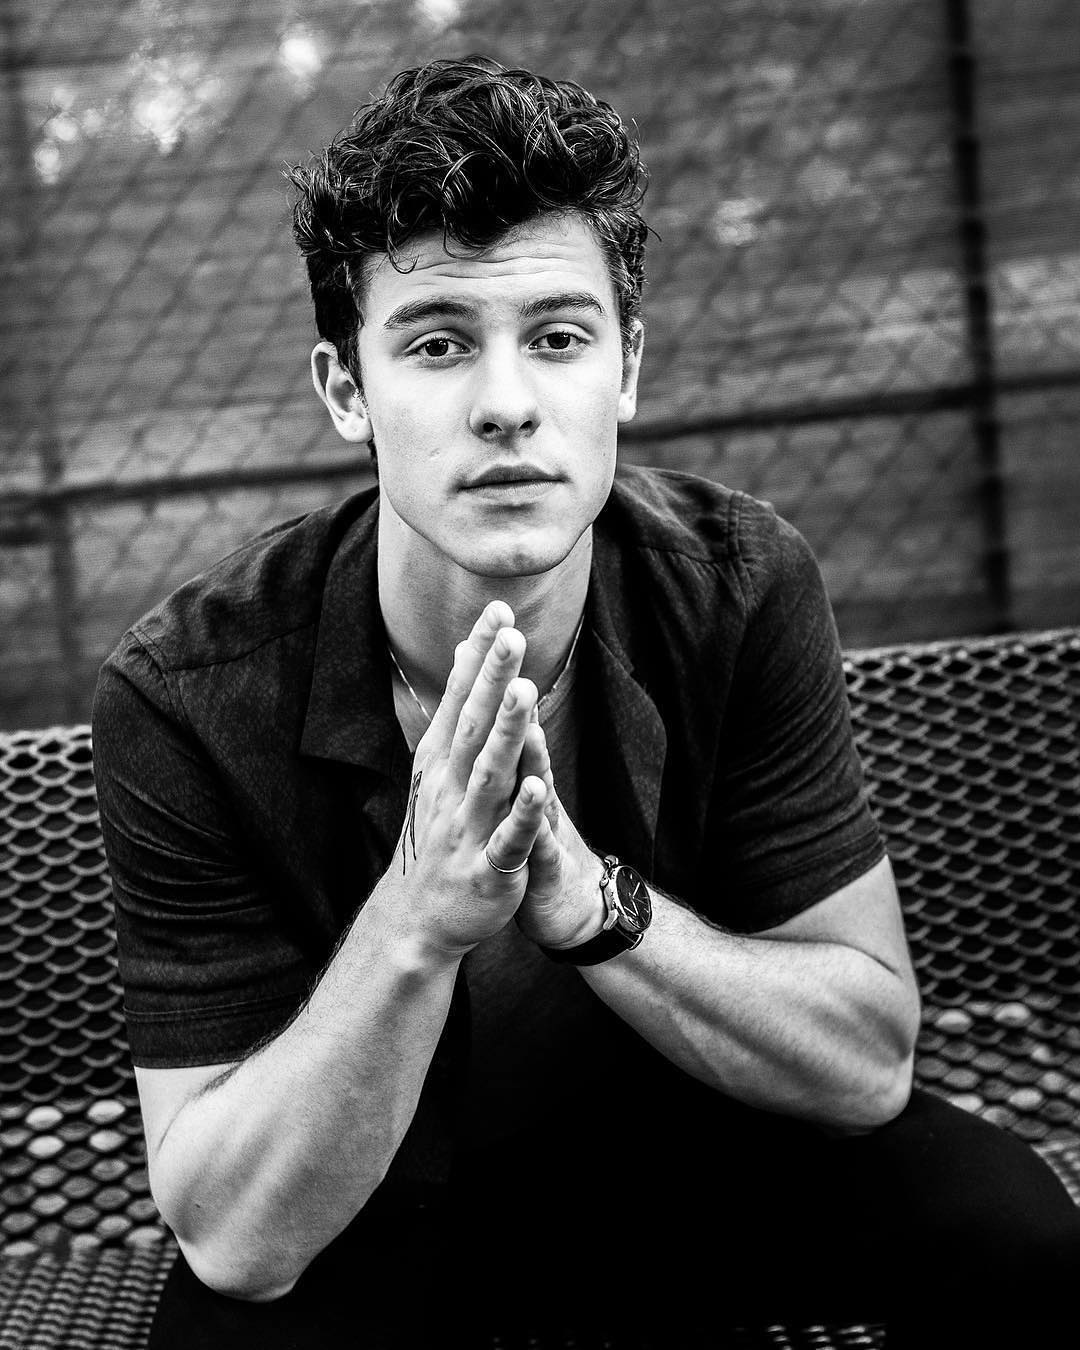 Shawn Mendes images Shawn Mendes HD wallpaper and background 1080x1350